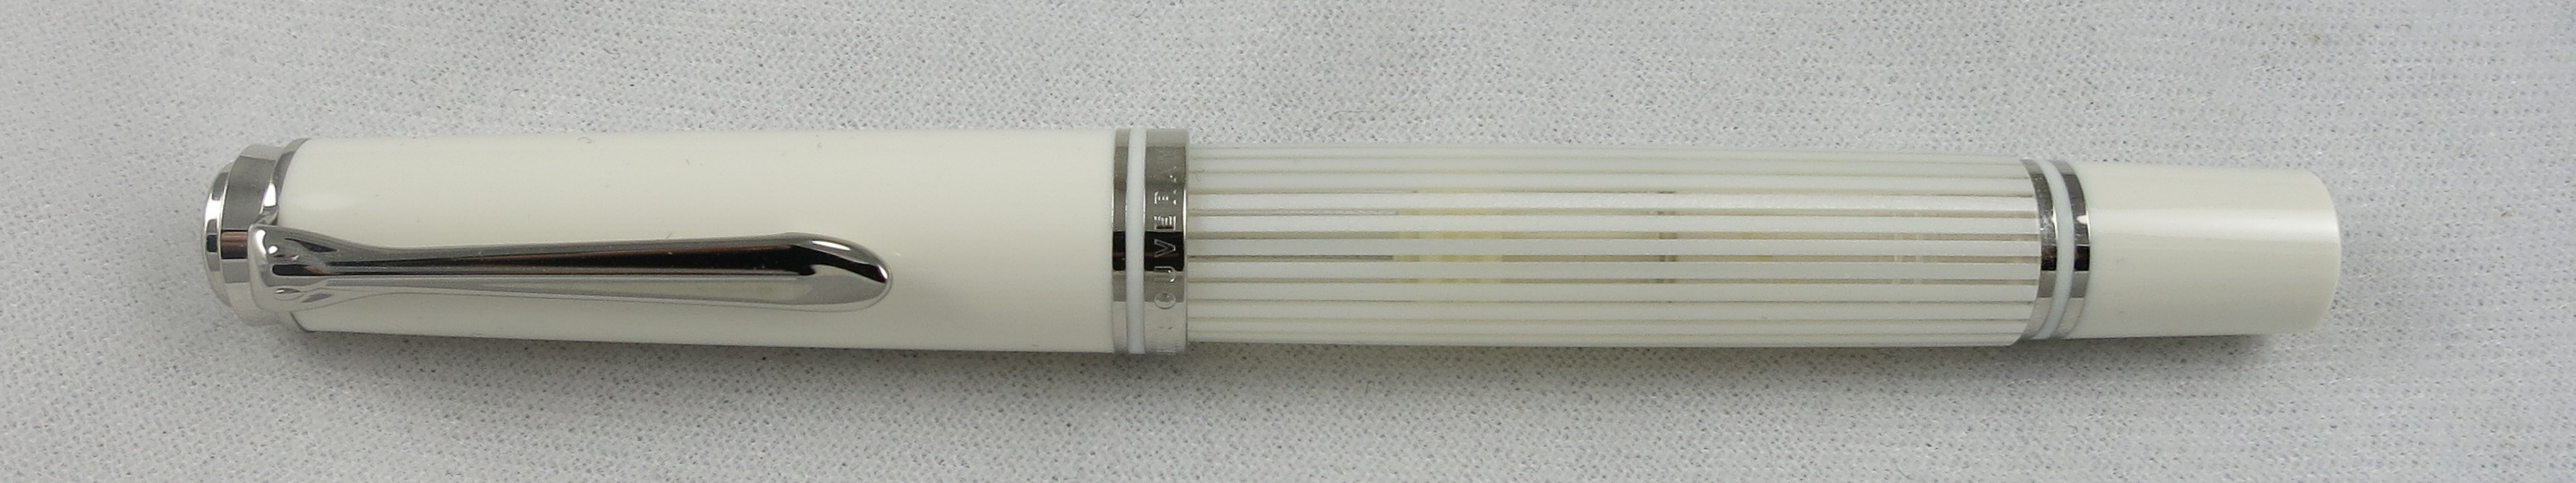 Pelikan Souveran M605 White Transparent (Pen 2212)